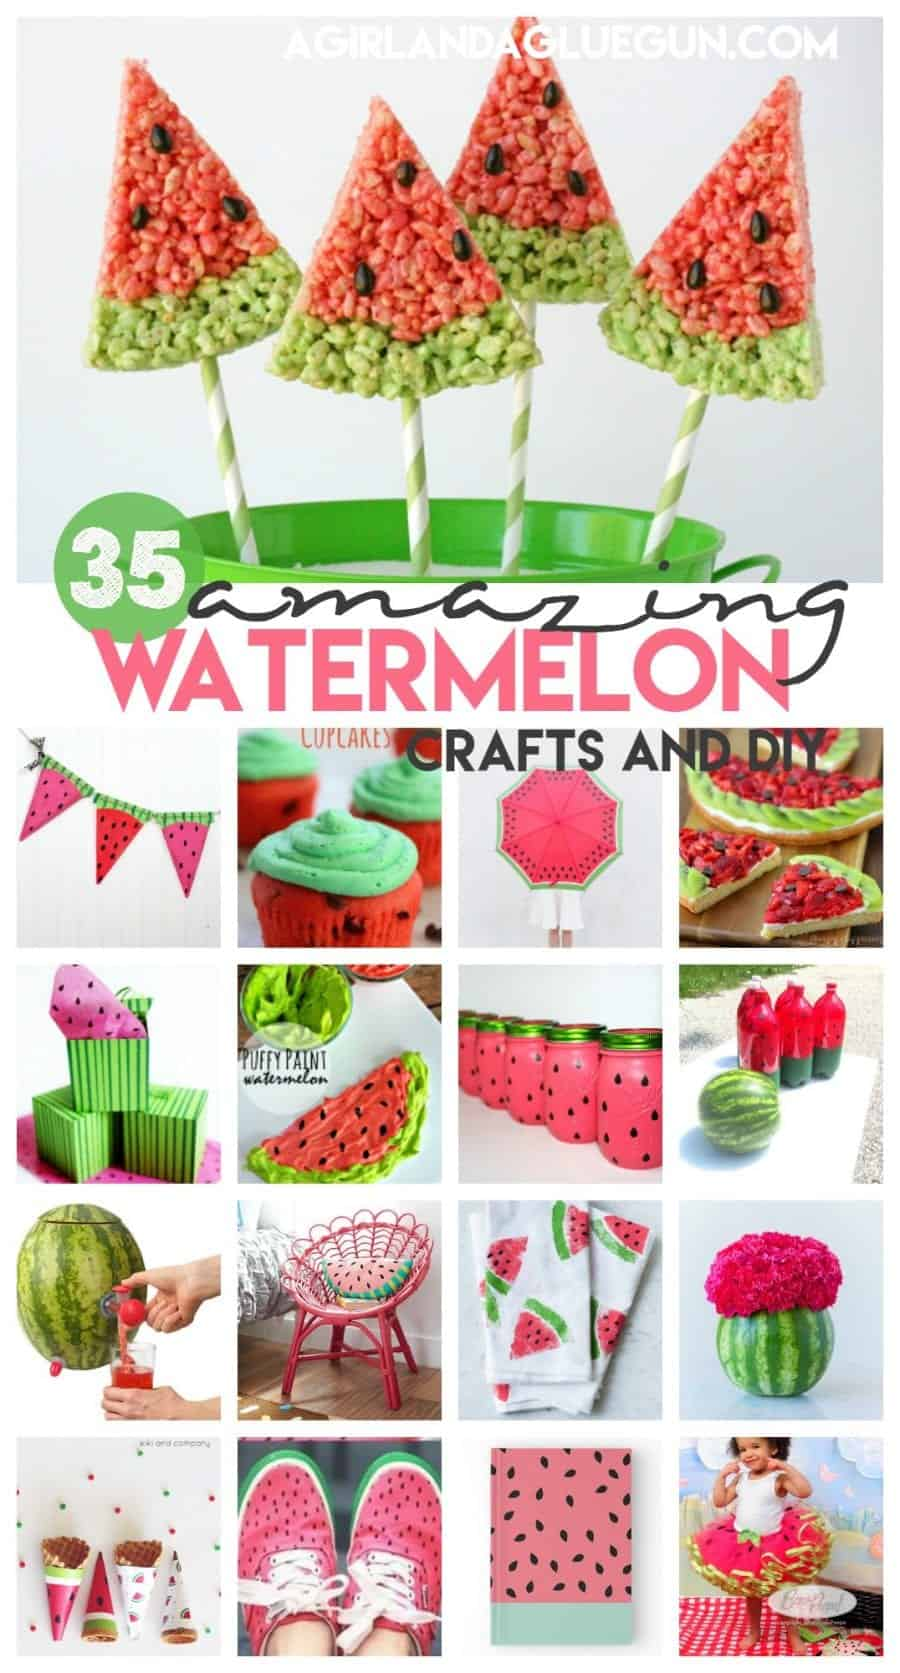 over 35 of the cutest watermelon treats, crafts and diy